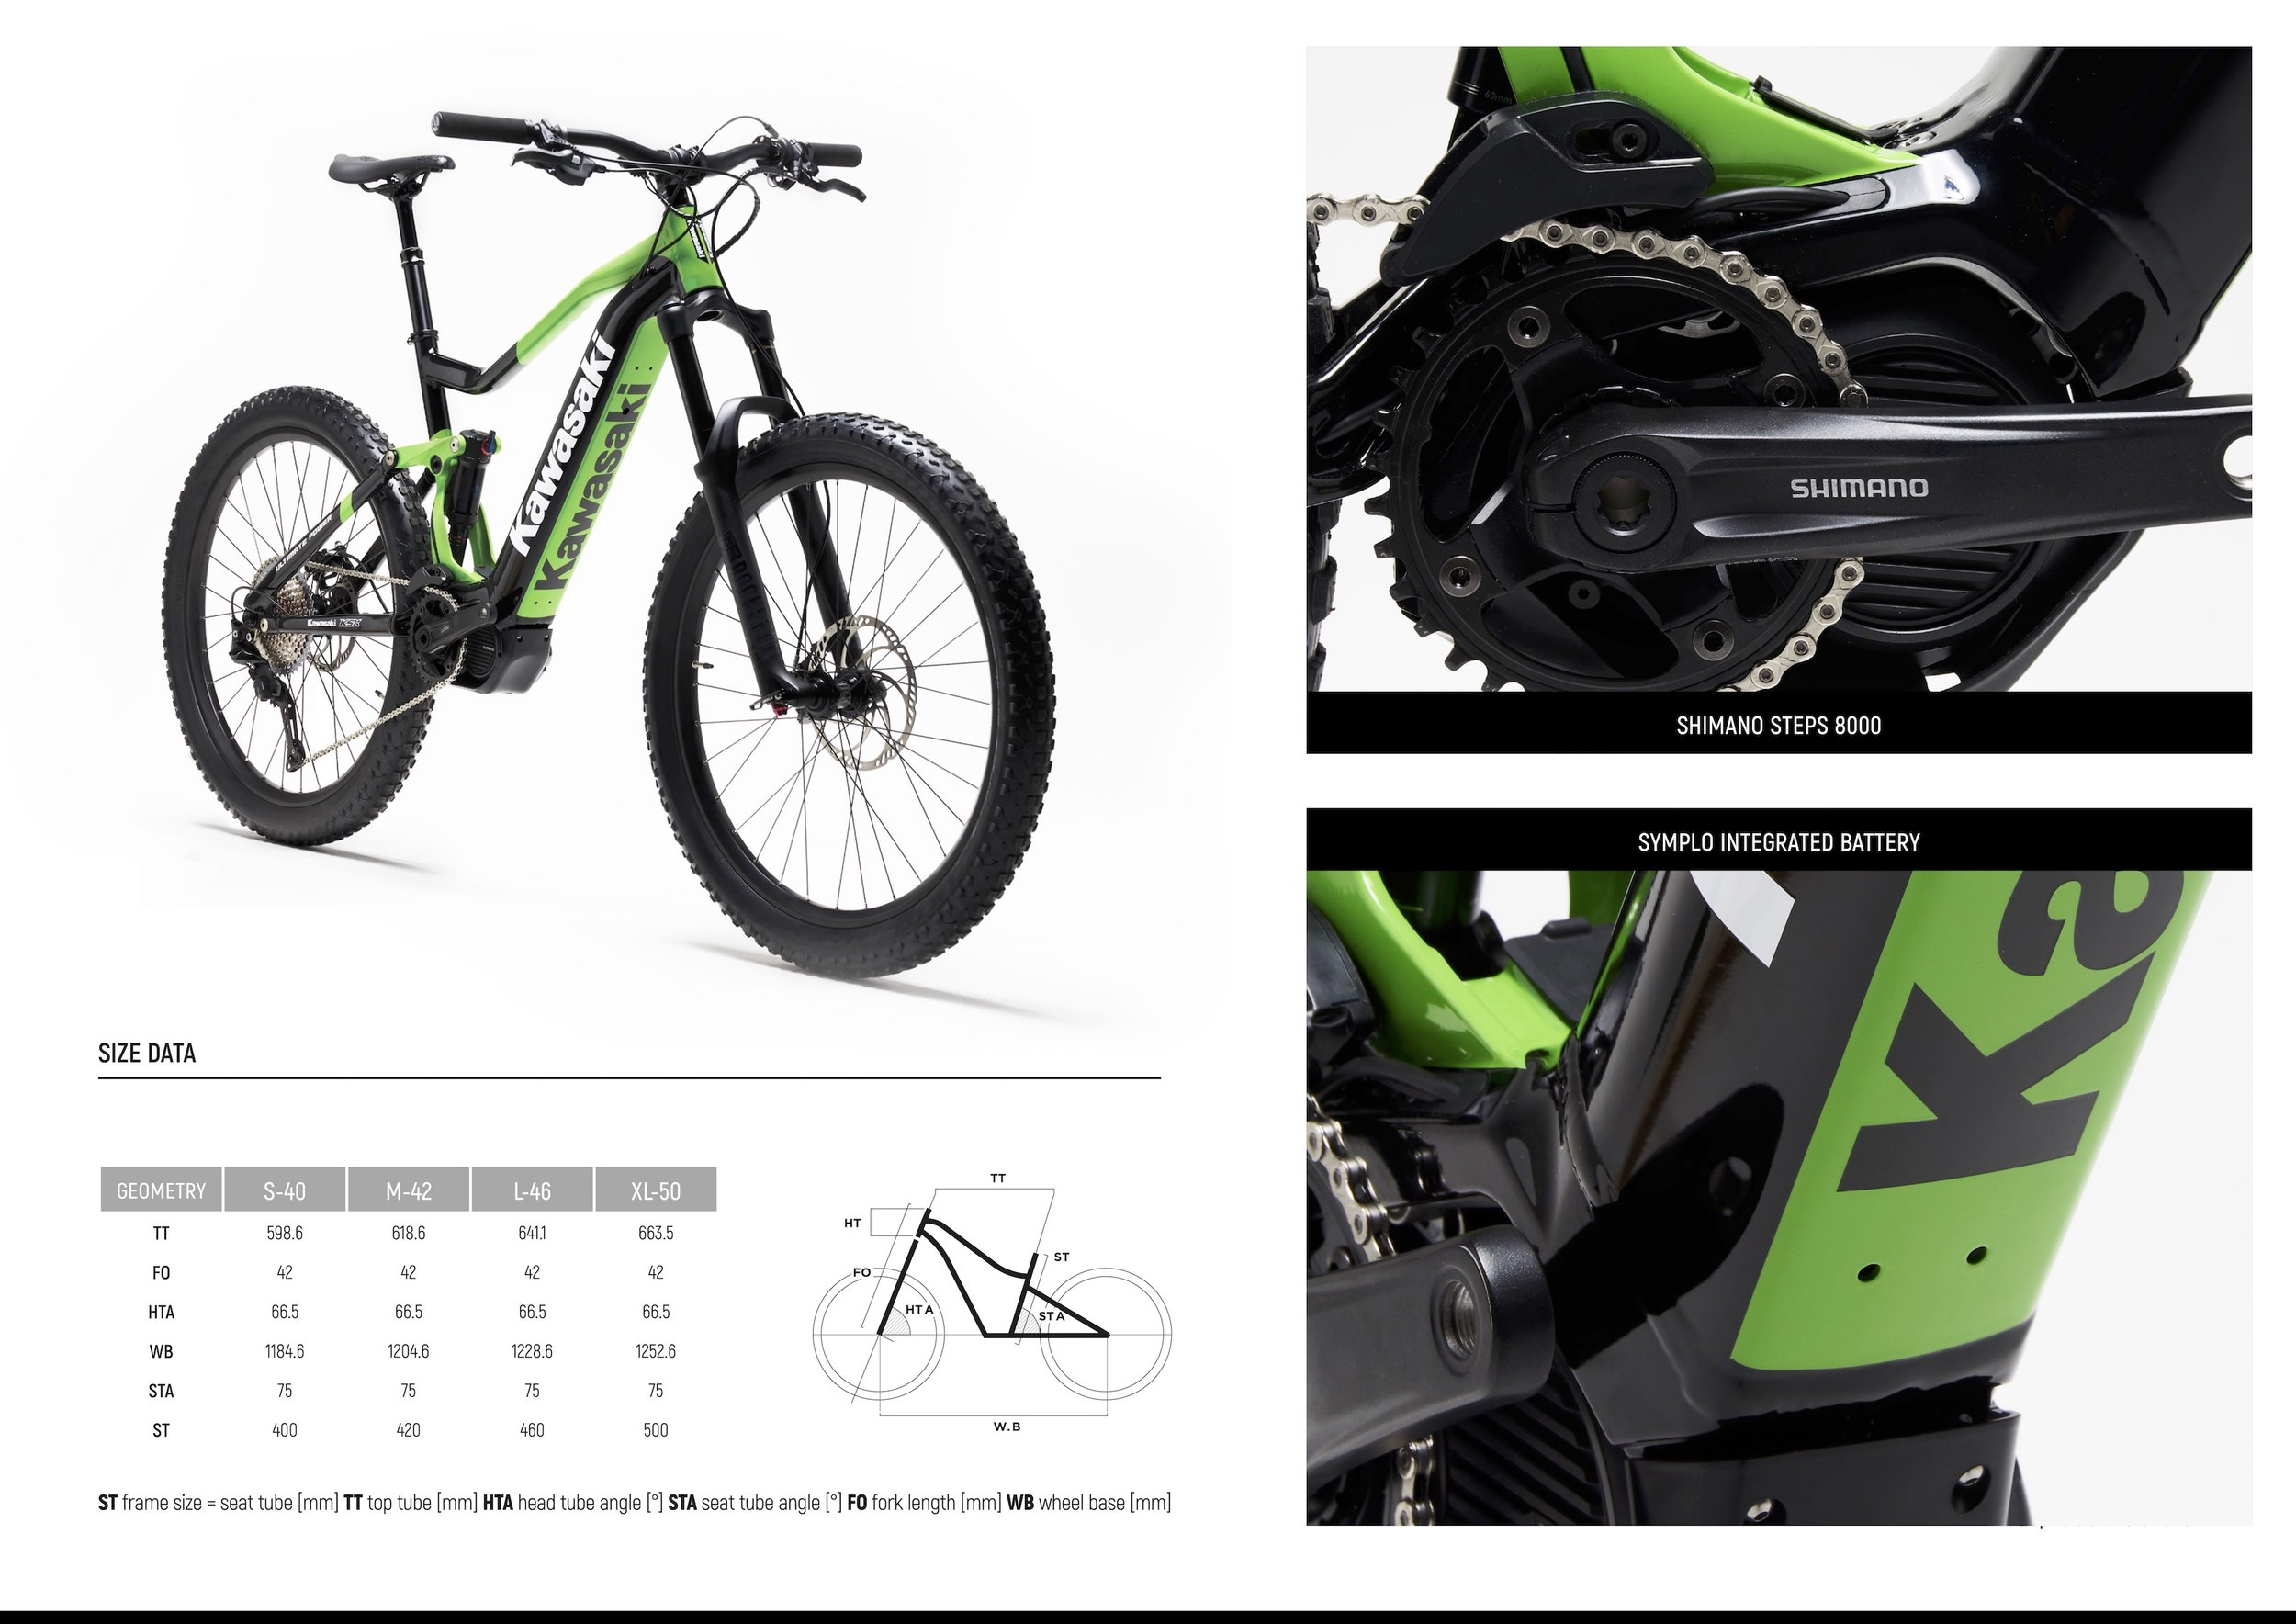 kawasaki+ultimate+power+ebikes+high+capacity+8,4.jpg